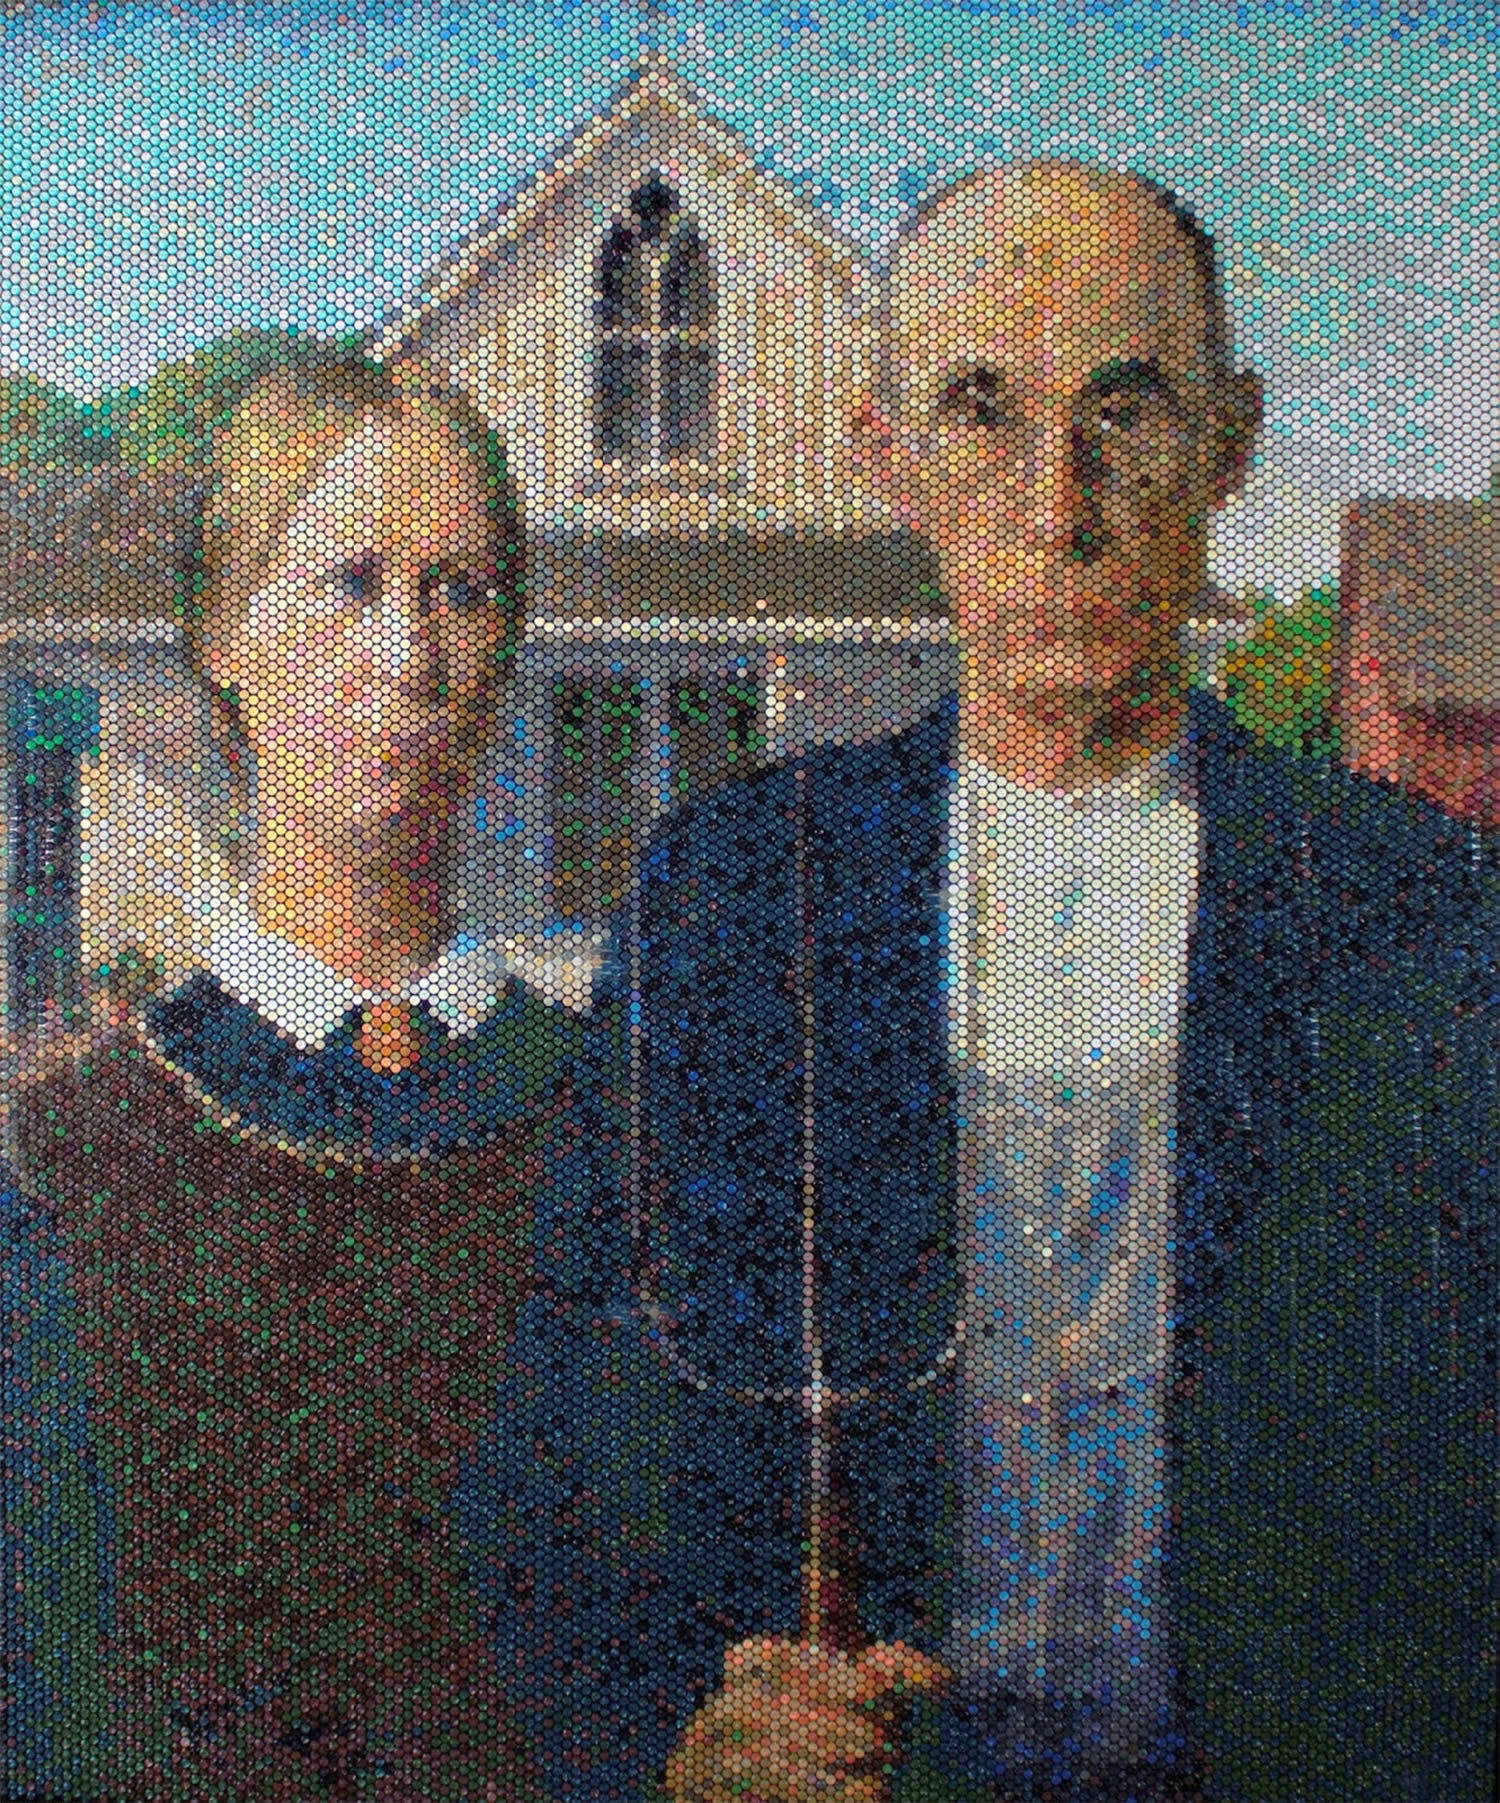 american gothic by bradley hart, bubble wrap